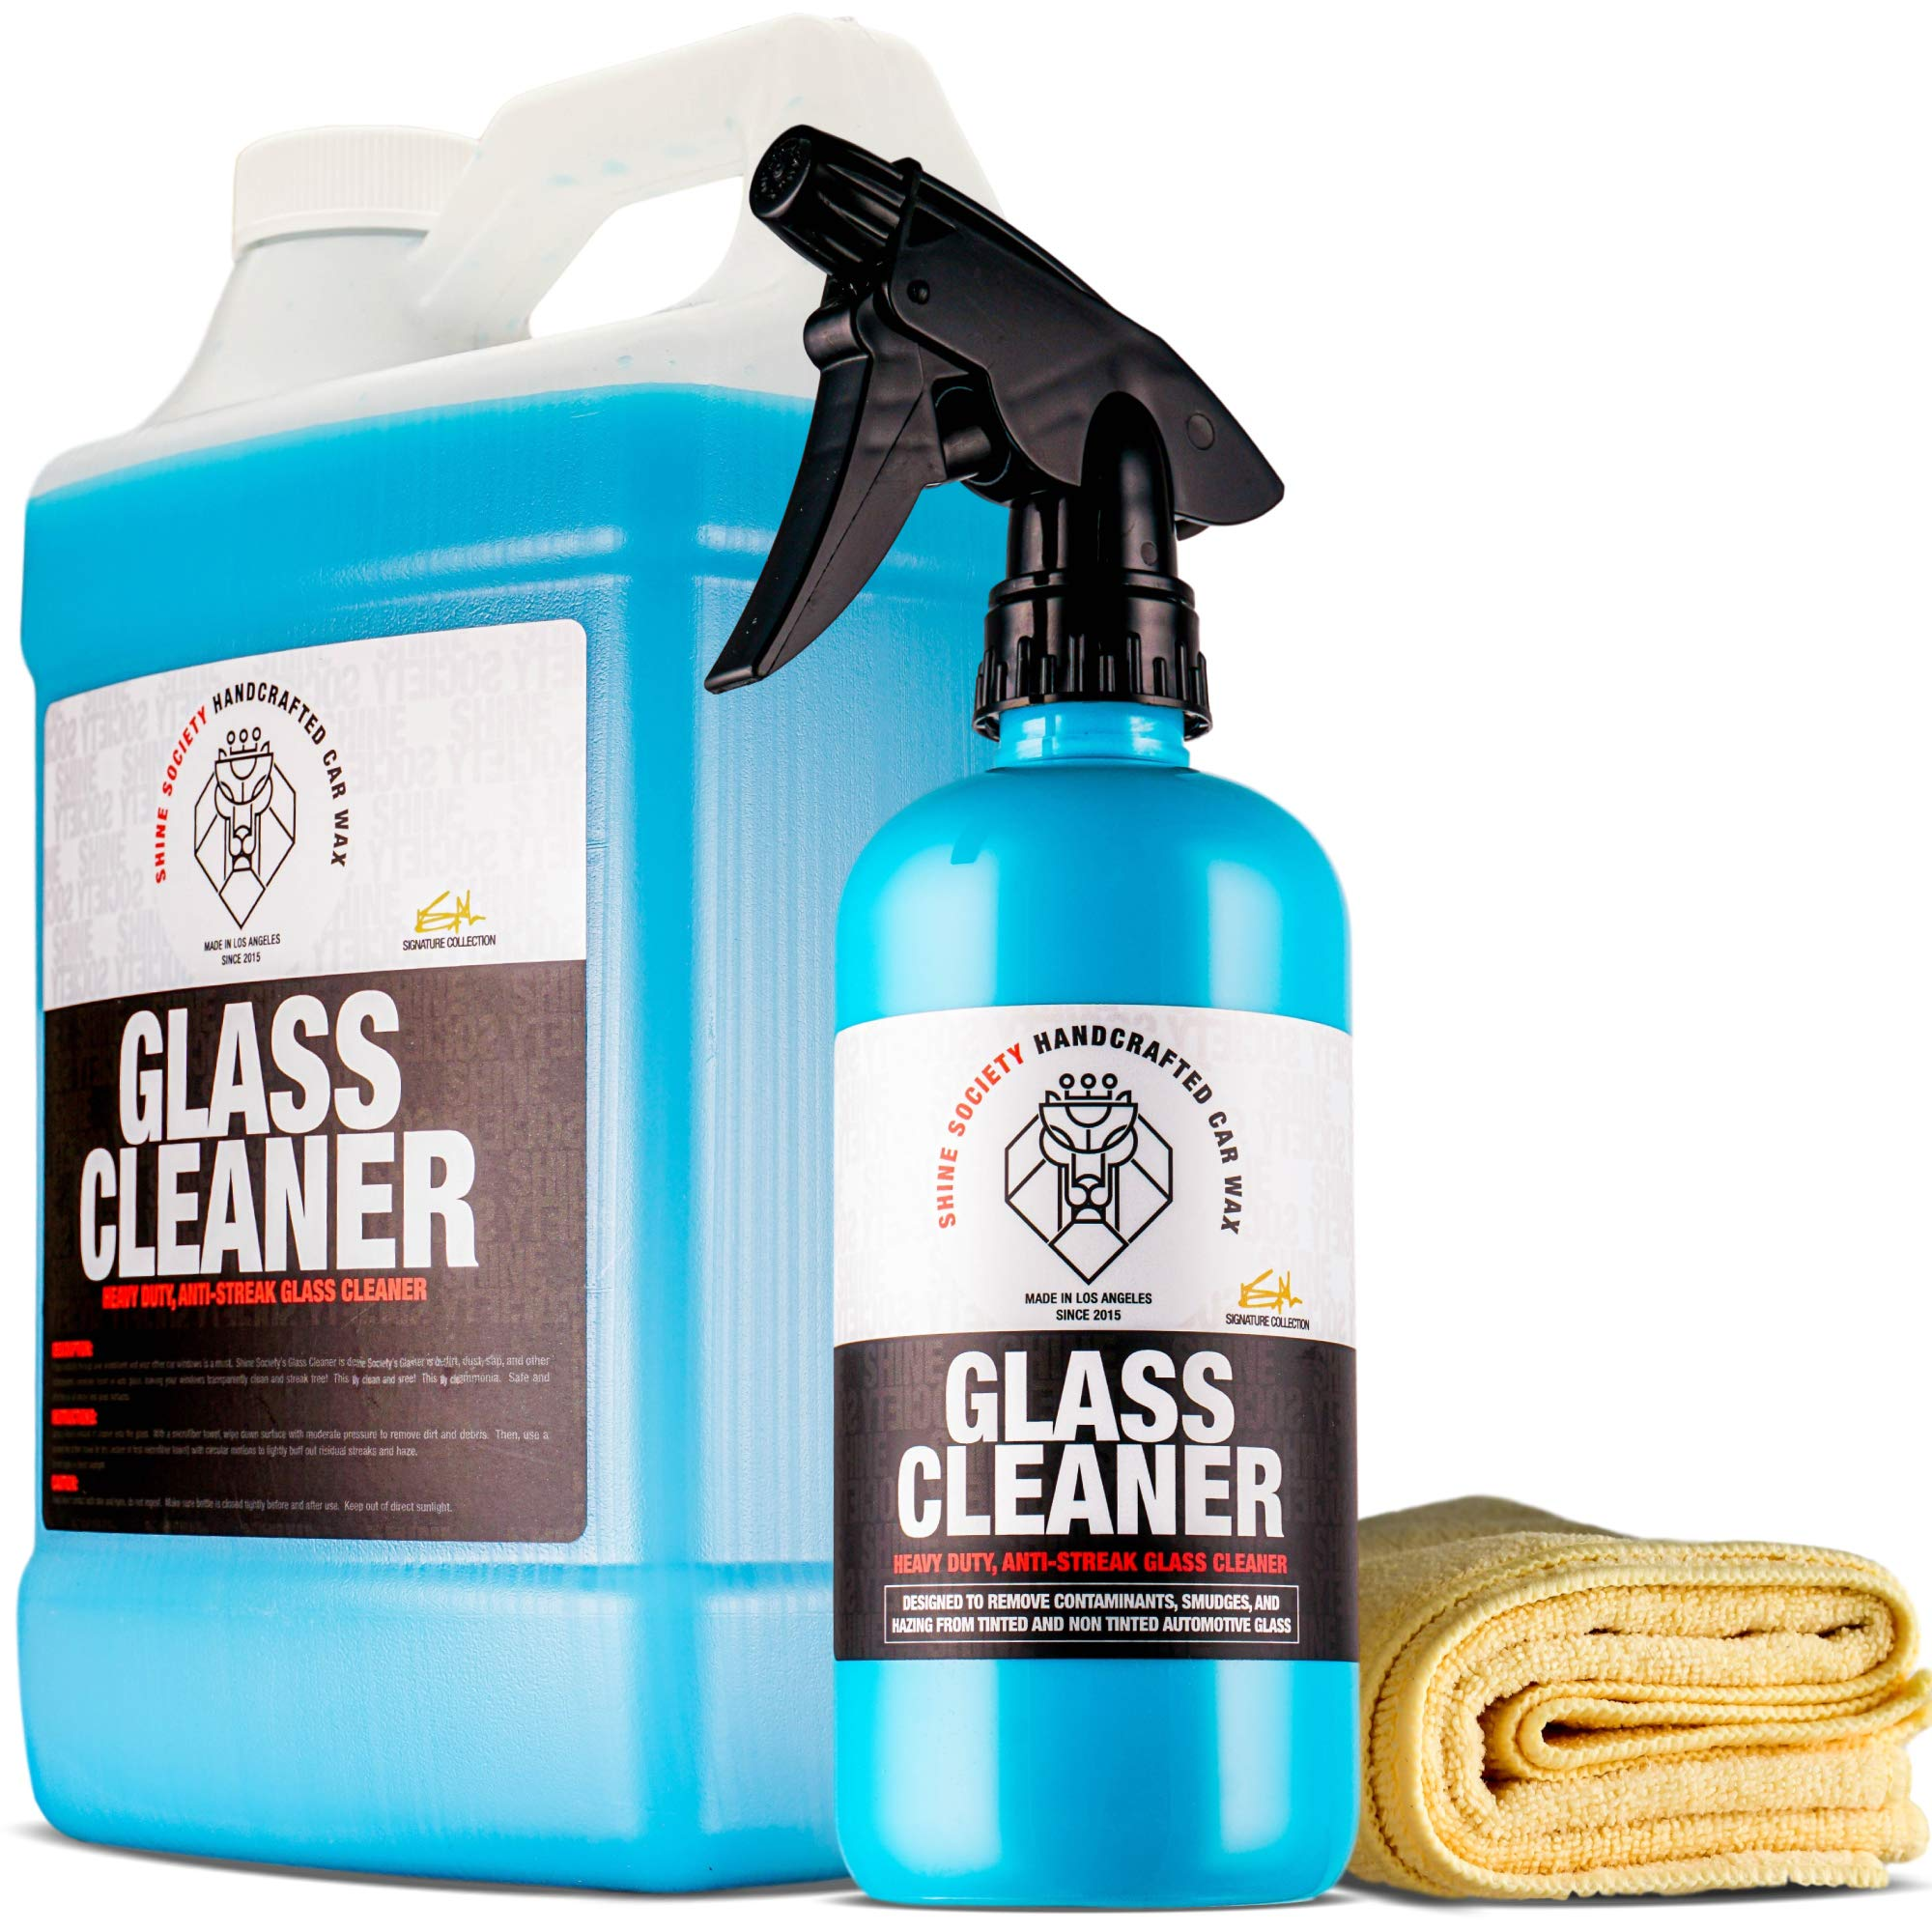 Shine Society Glass and Window Cleaner, 100% All-Natural Anti Streak Formula, Made for Tinted and Non-Tinted Car Windows (Value Pack) by Shine Society (Image #1)